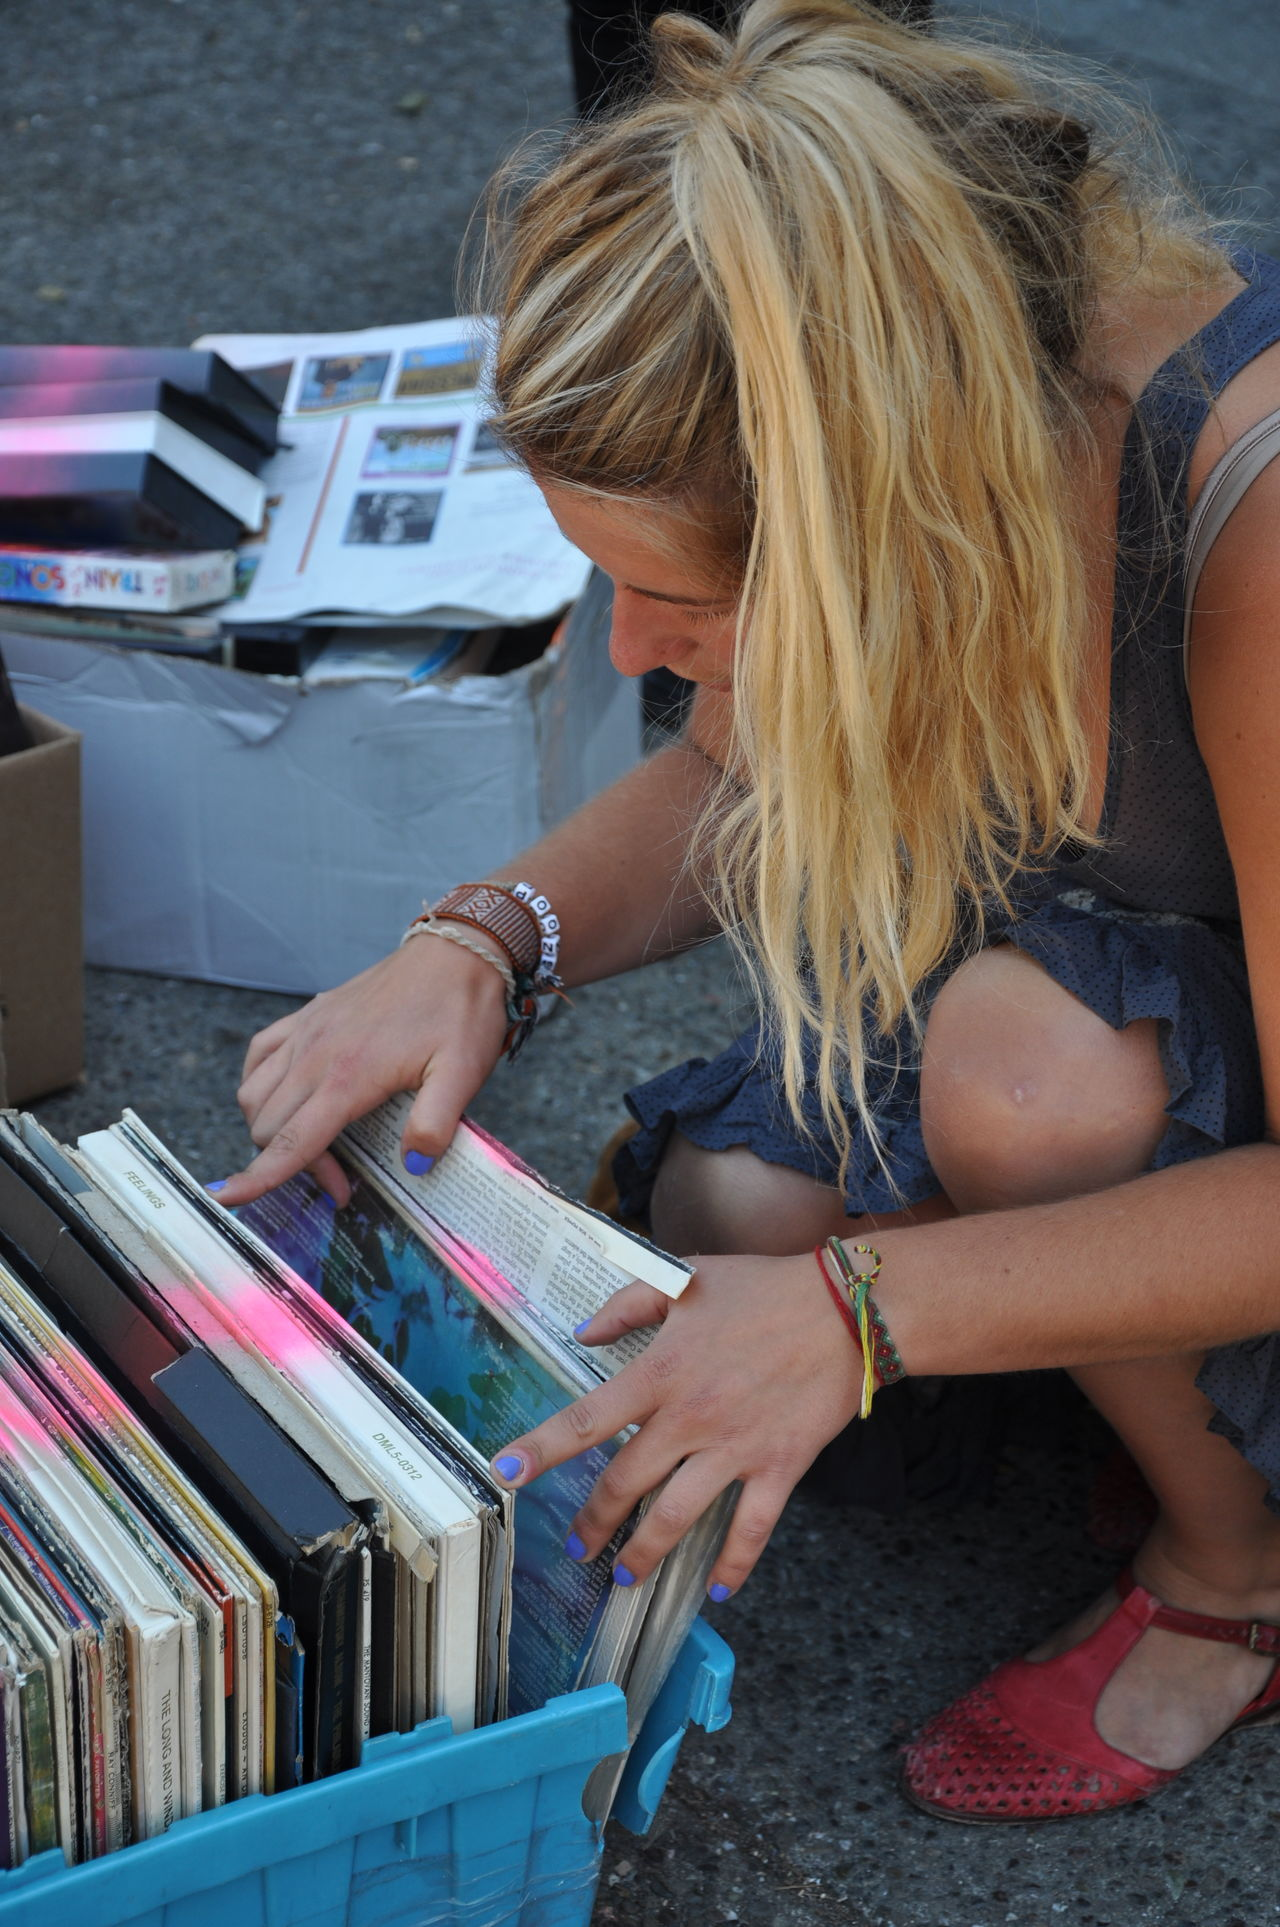 Advent Babe Berkeley Blond Hair Cali California Colors Day Hippie LP Music One Woman Only Record Records Tranquility West Coast